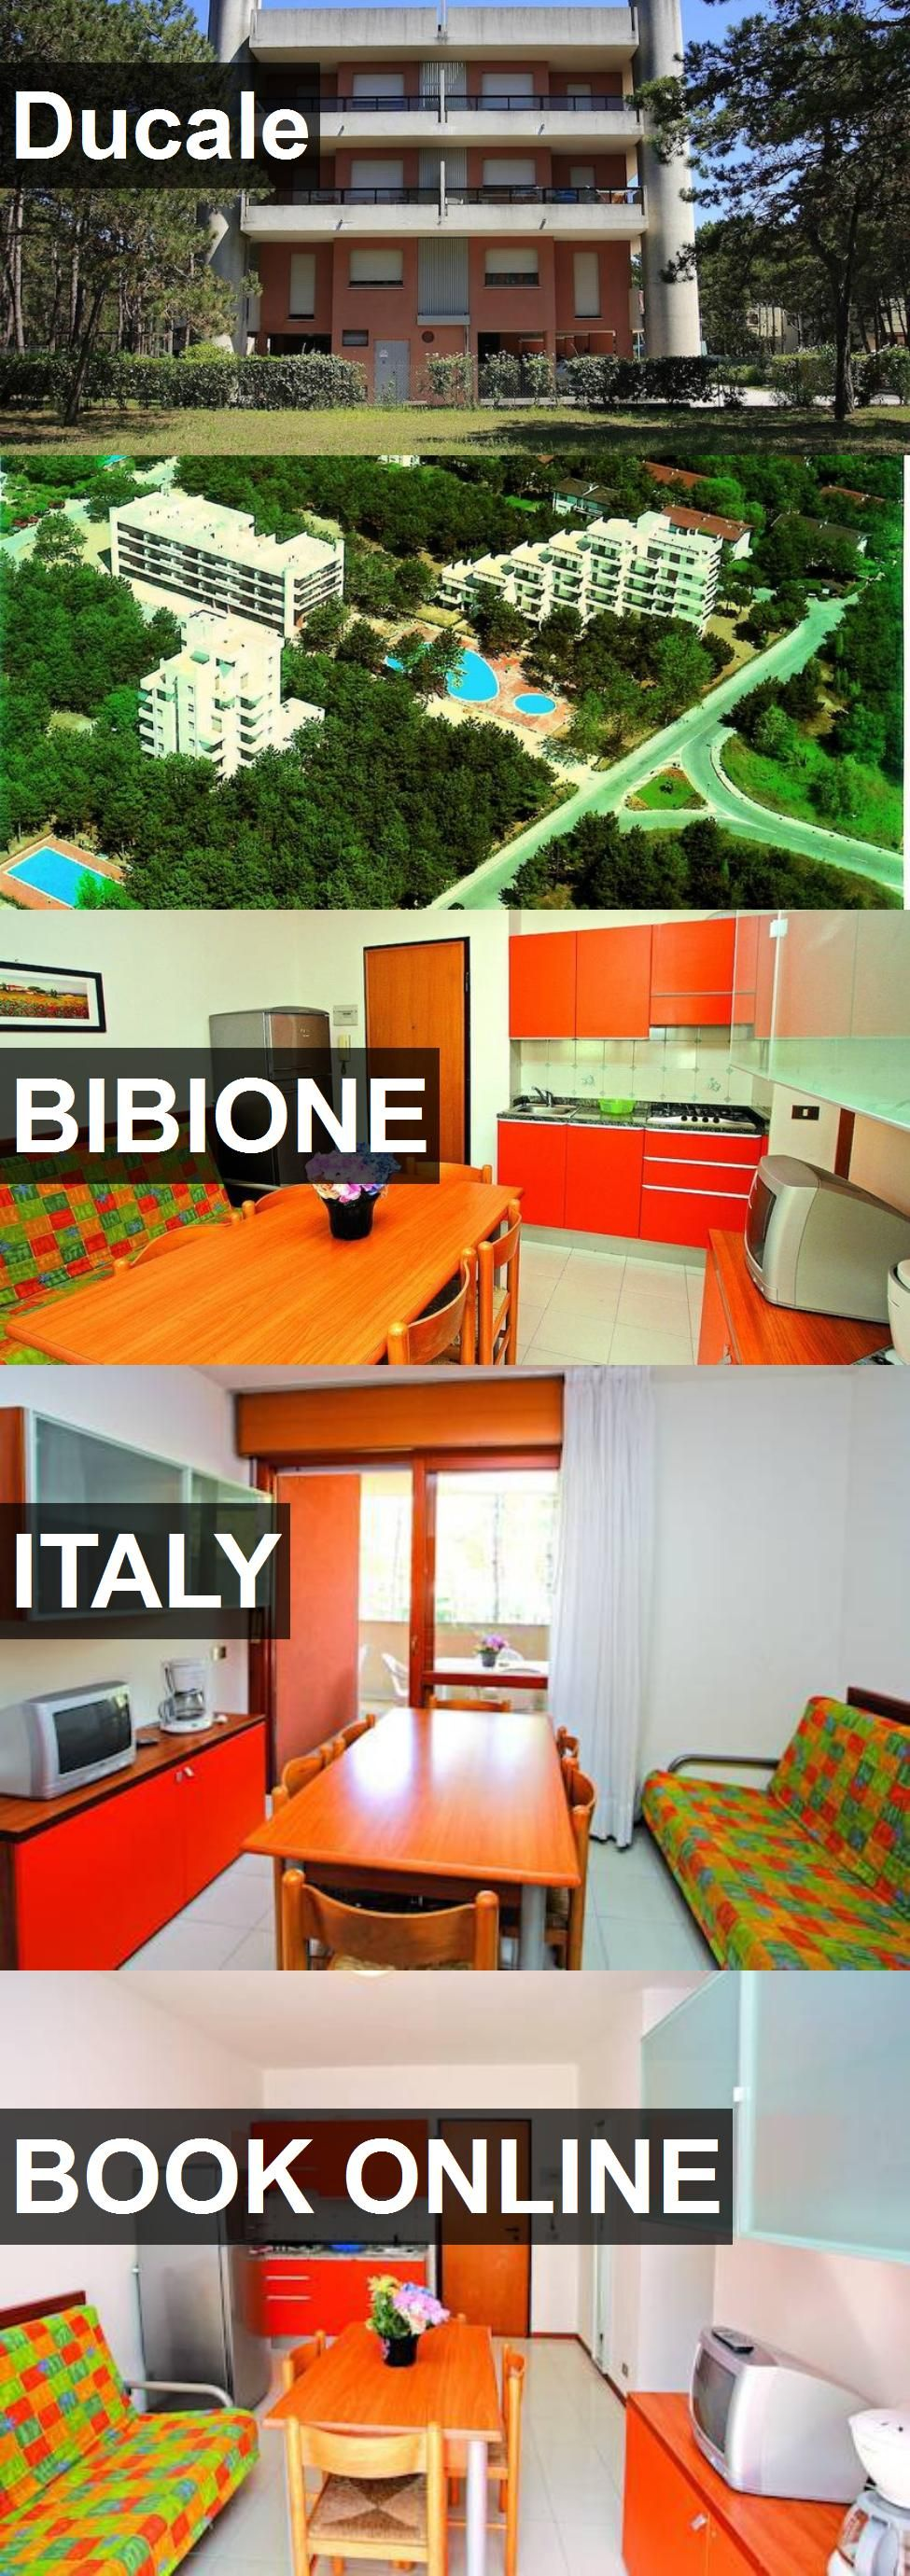 Hotel Ducale in Bibione, Italy. For more information